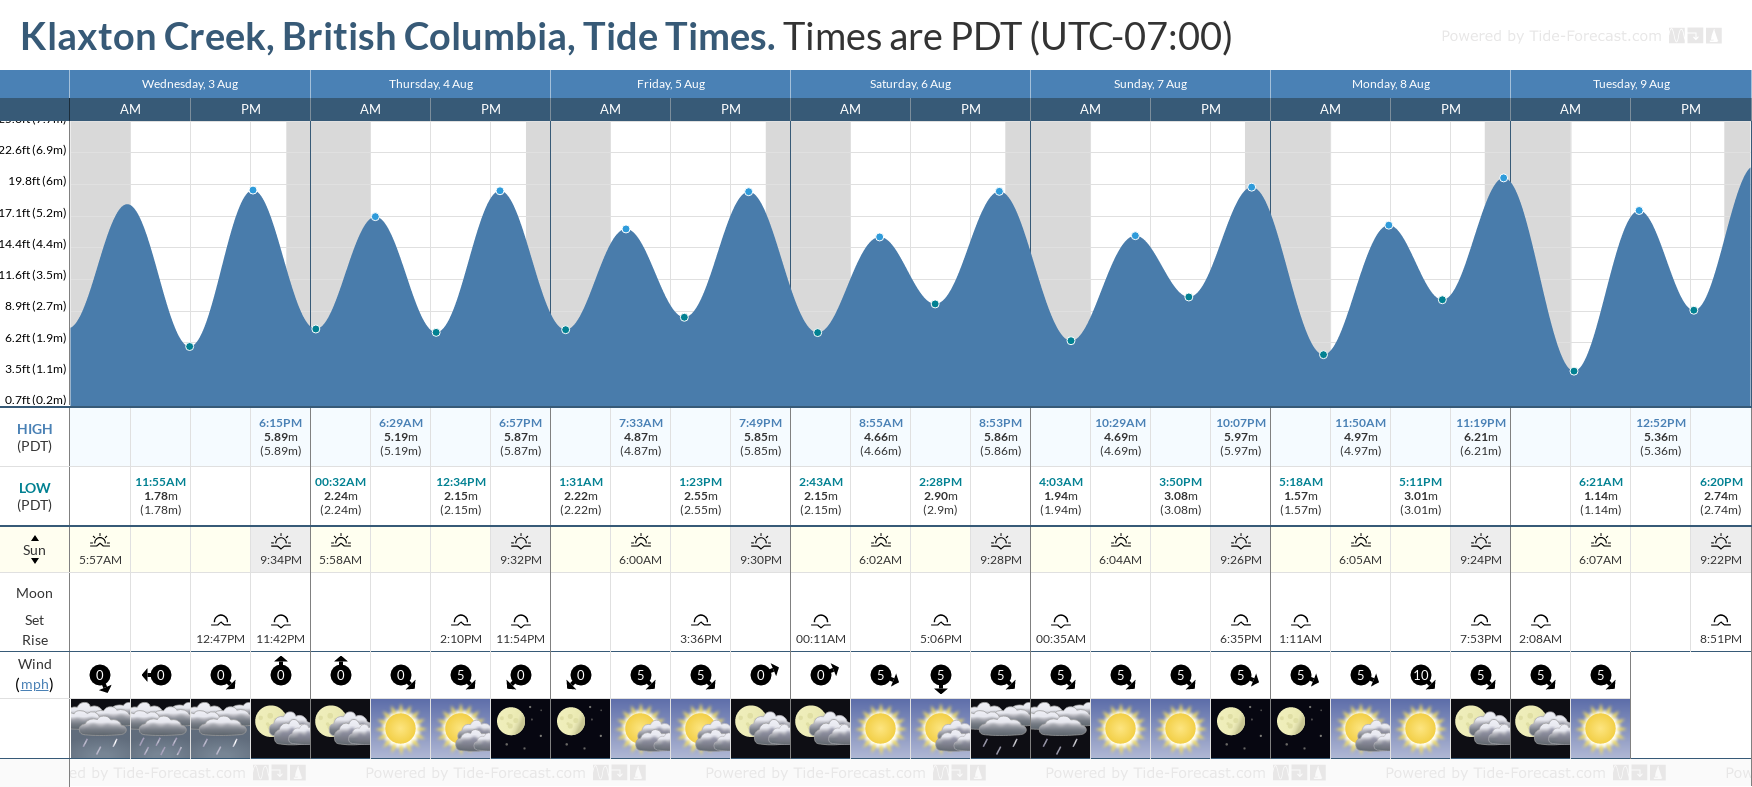 Klaxton Creek, British Columbia Tide Chart including high and low tide tide times for the next 7 days